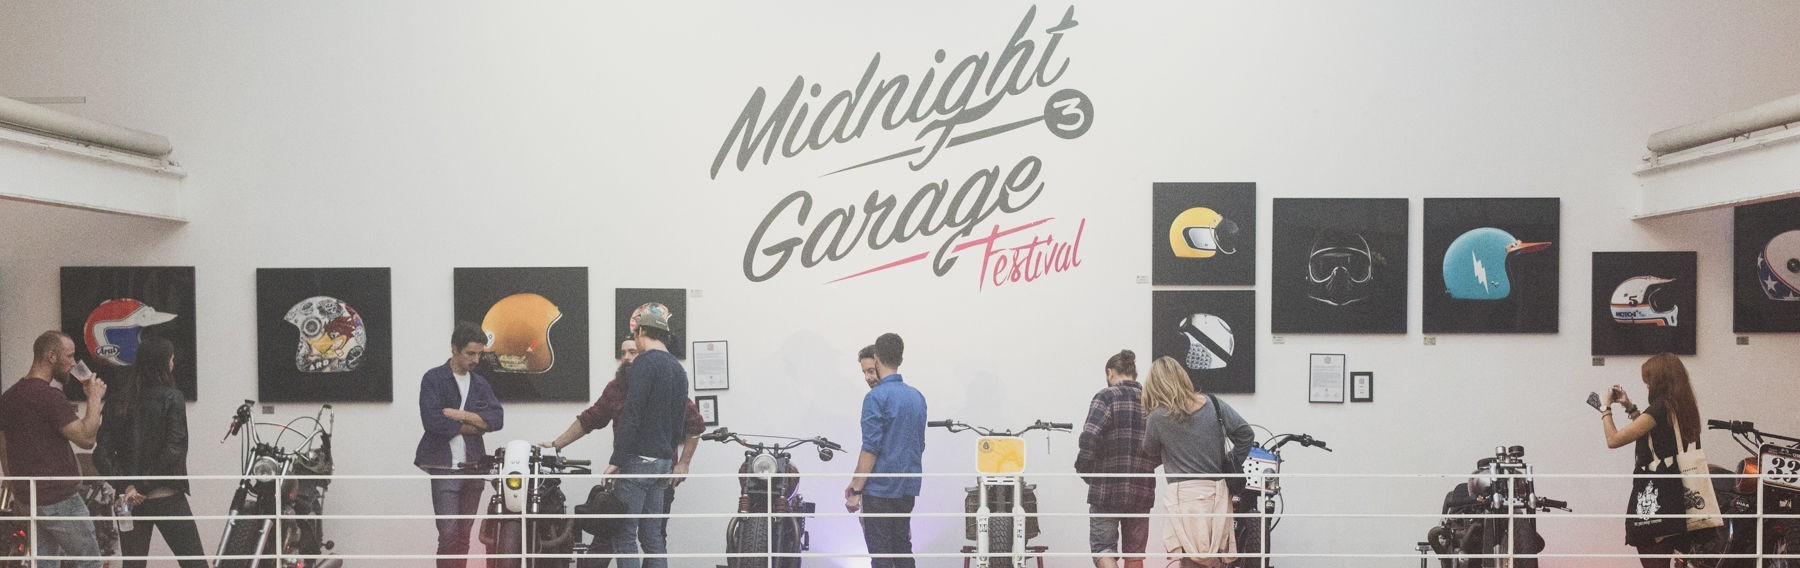 Event ambiance pics during Midnight Garage Festival 2017 in Paris